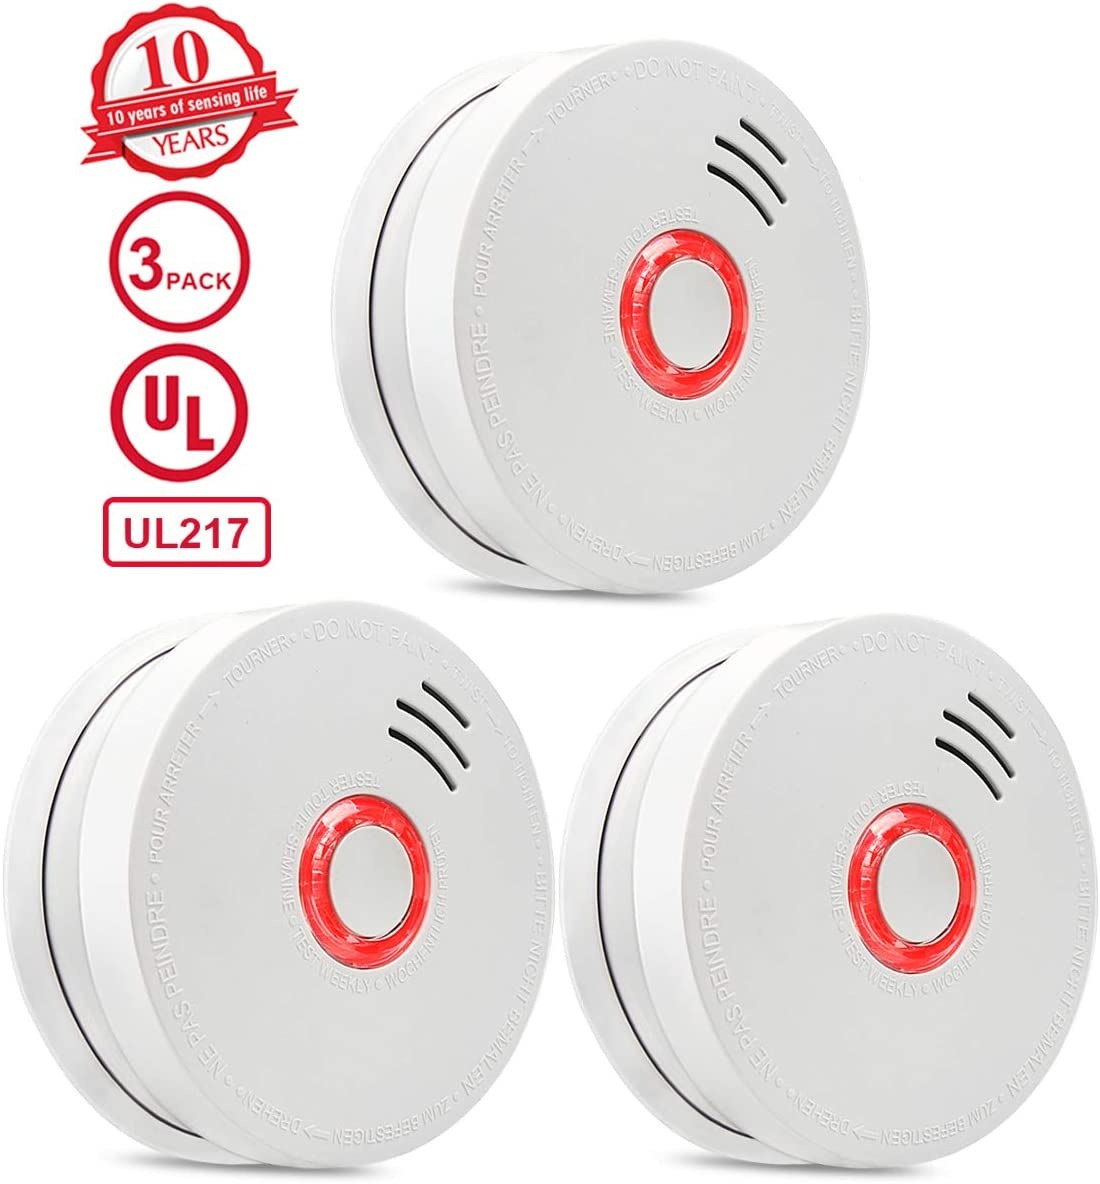 Smoke Detector 3 Packs Photoelectric Smoke Alarm Fire Alarm With Light Sound Warning 9v Battery Included Powered Fire Safety For Home Hotel School Etc Passed Ul Certification Amazon Com